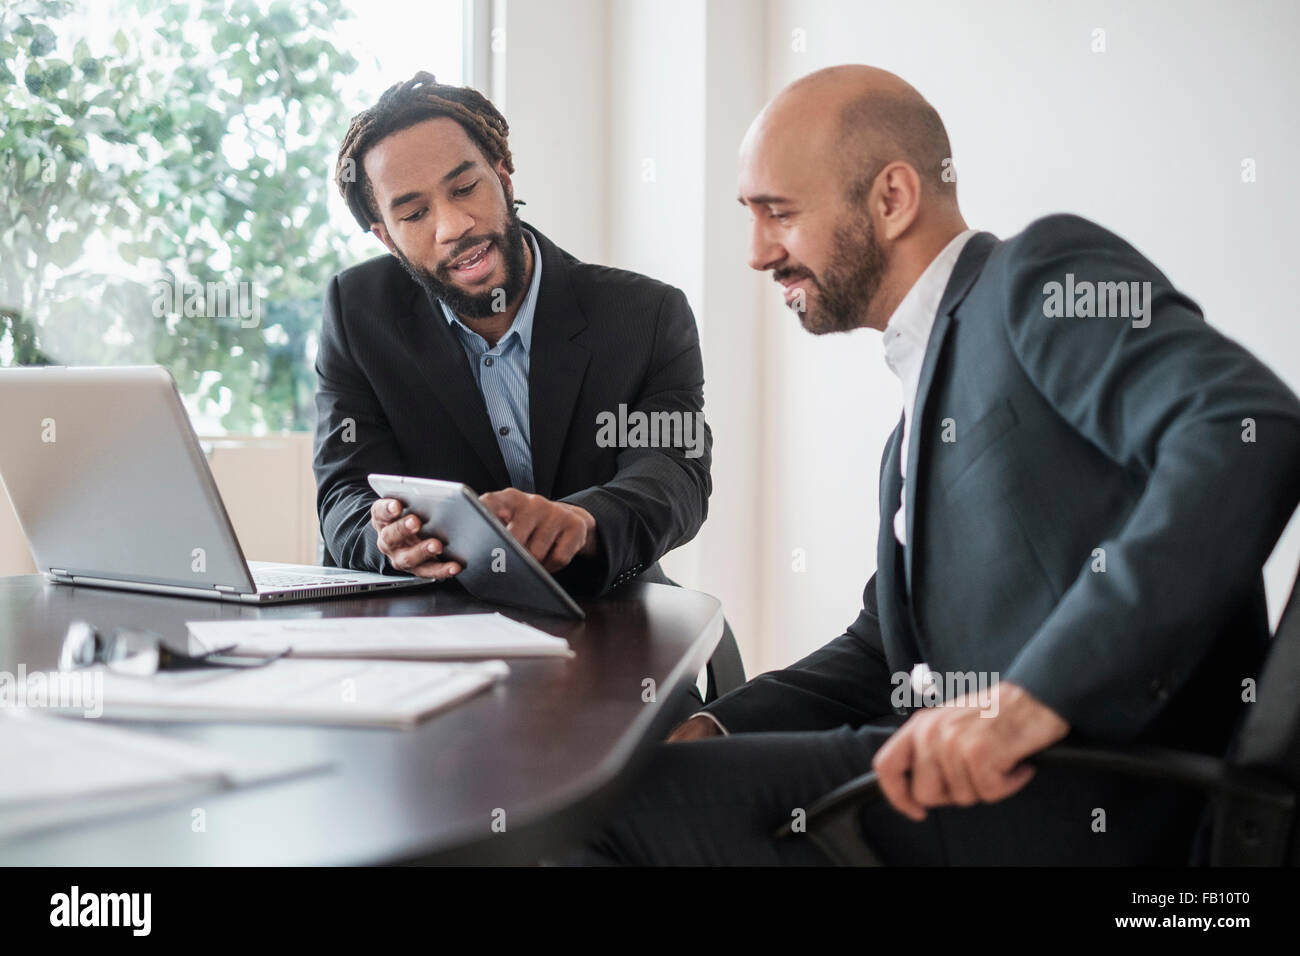 Two businessmen working with digital tablet by desk in office - Stock Image